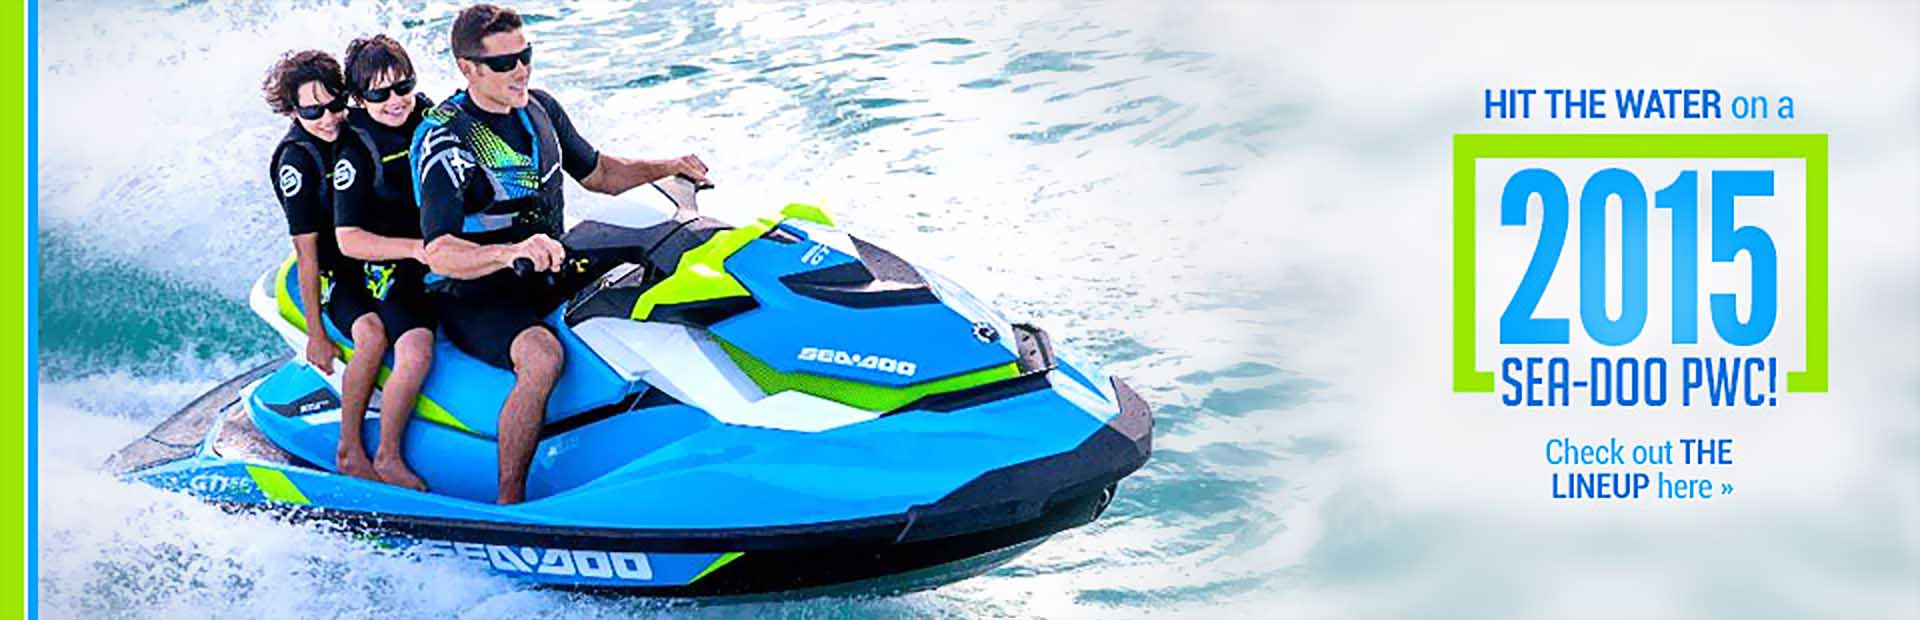 Hit the water on a 2015 Sea-Doo PWC! Click here to view the models.